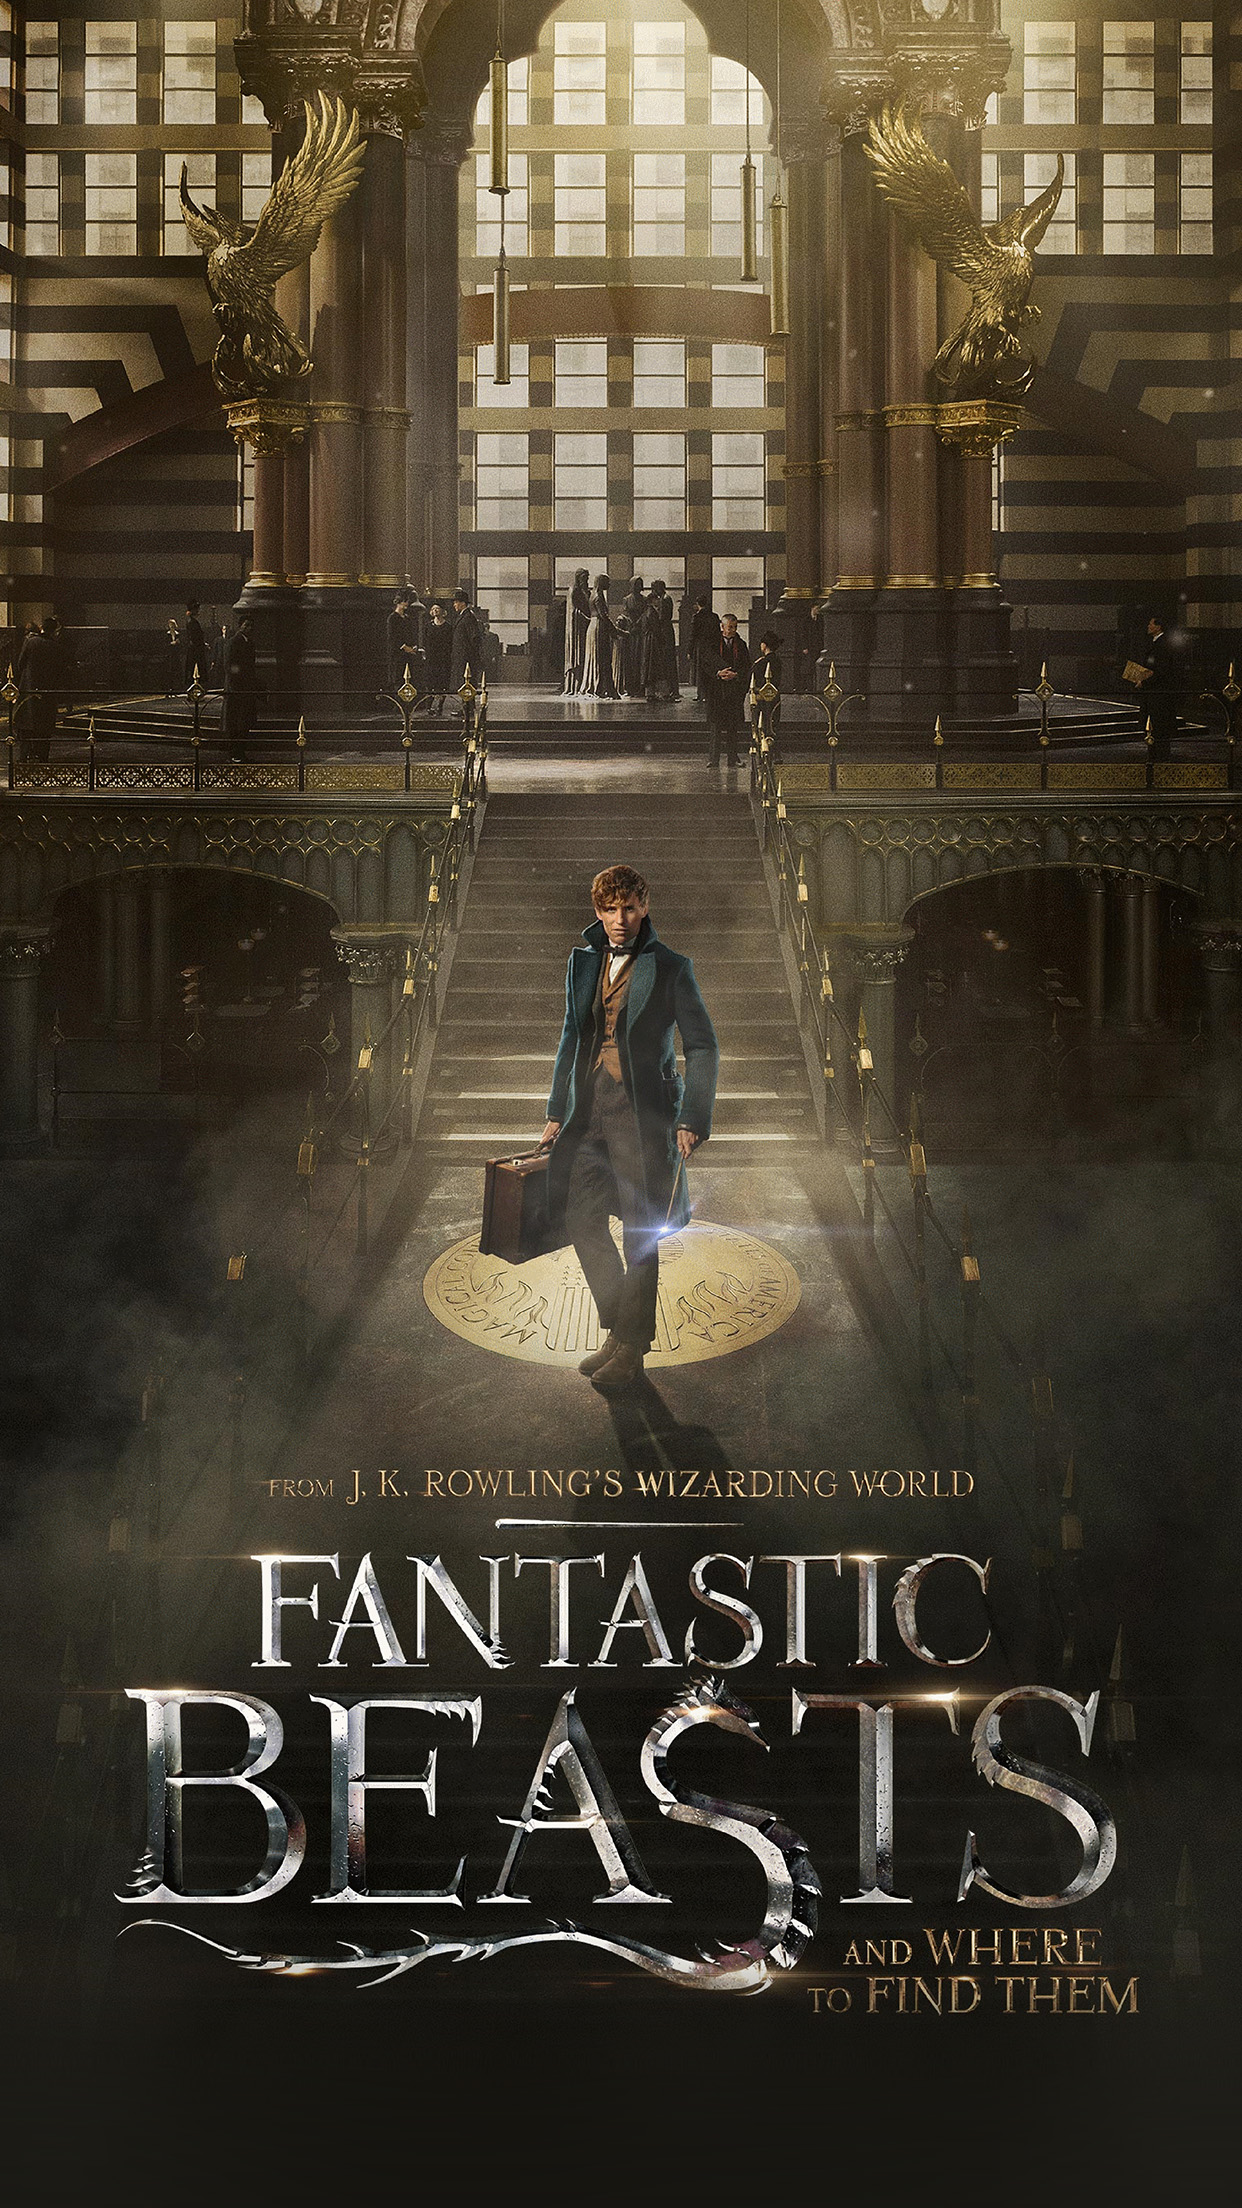 Fantastic Beasts And Where To Find Them Film Illustration Art Poster Android wallpaper